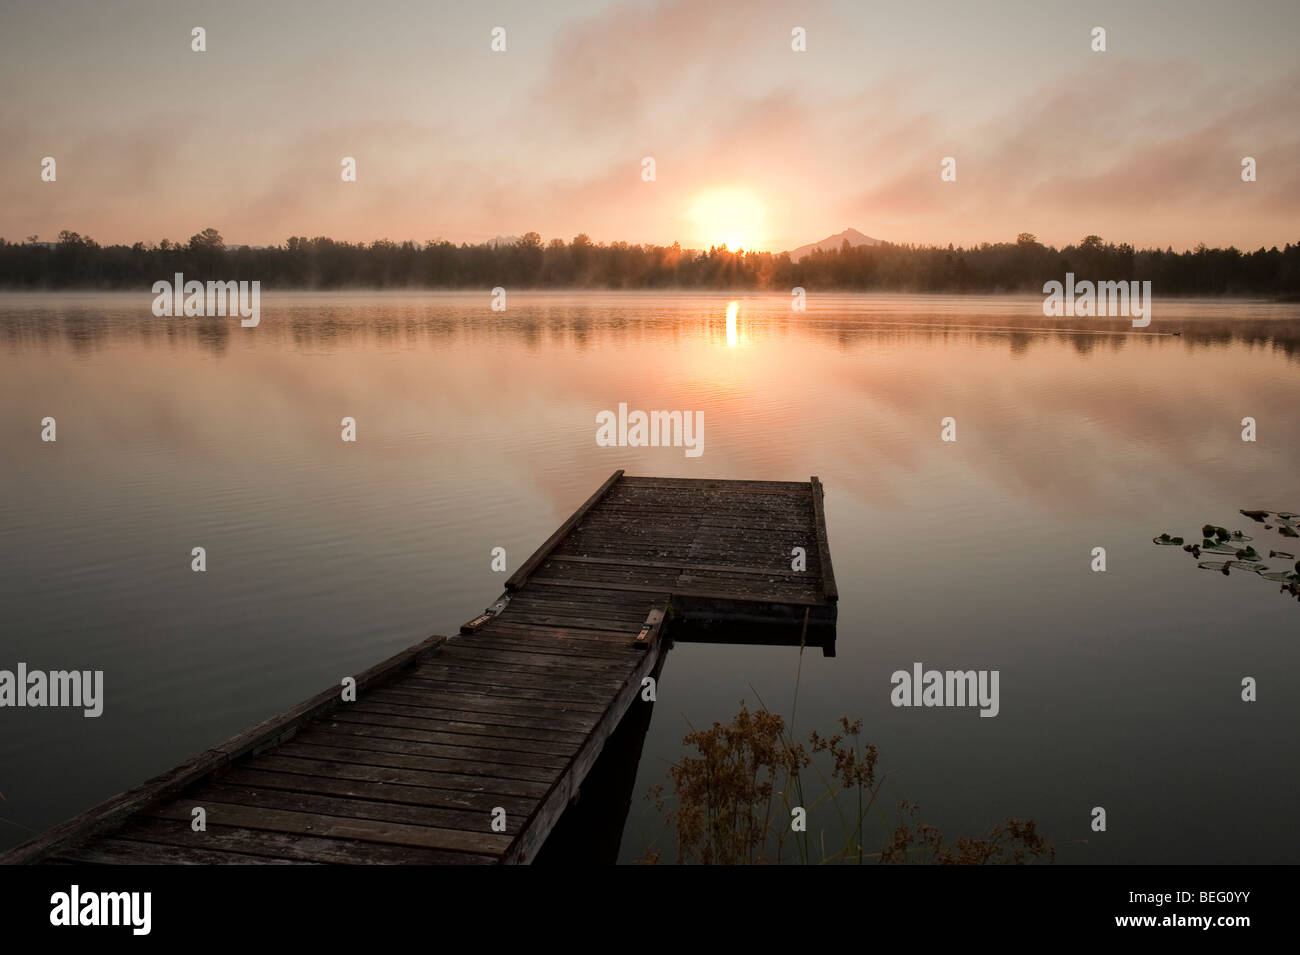 Sunrise at Lake Cassidy in fog with Mount Pilchuck and dock - Stock Image